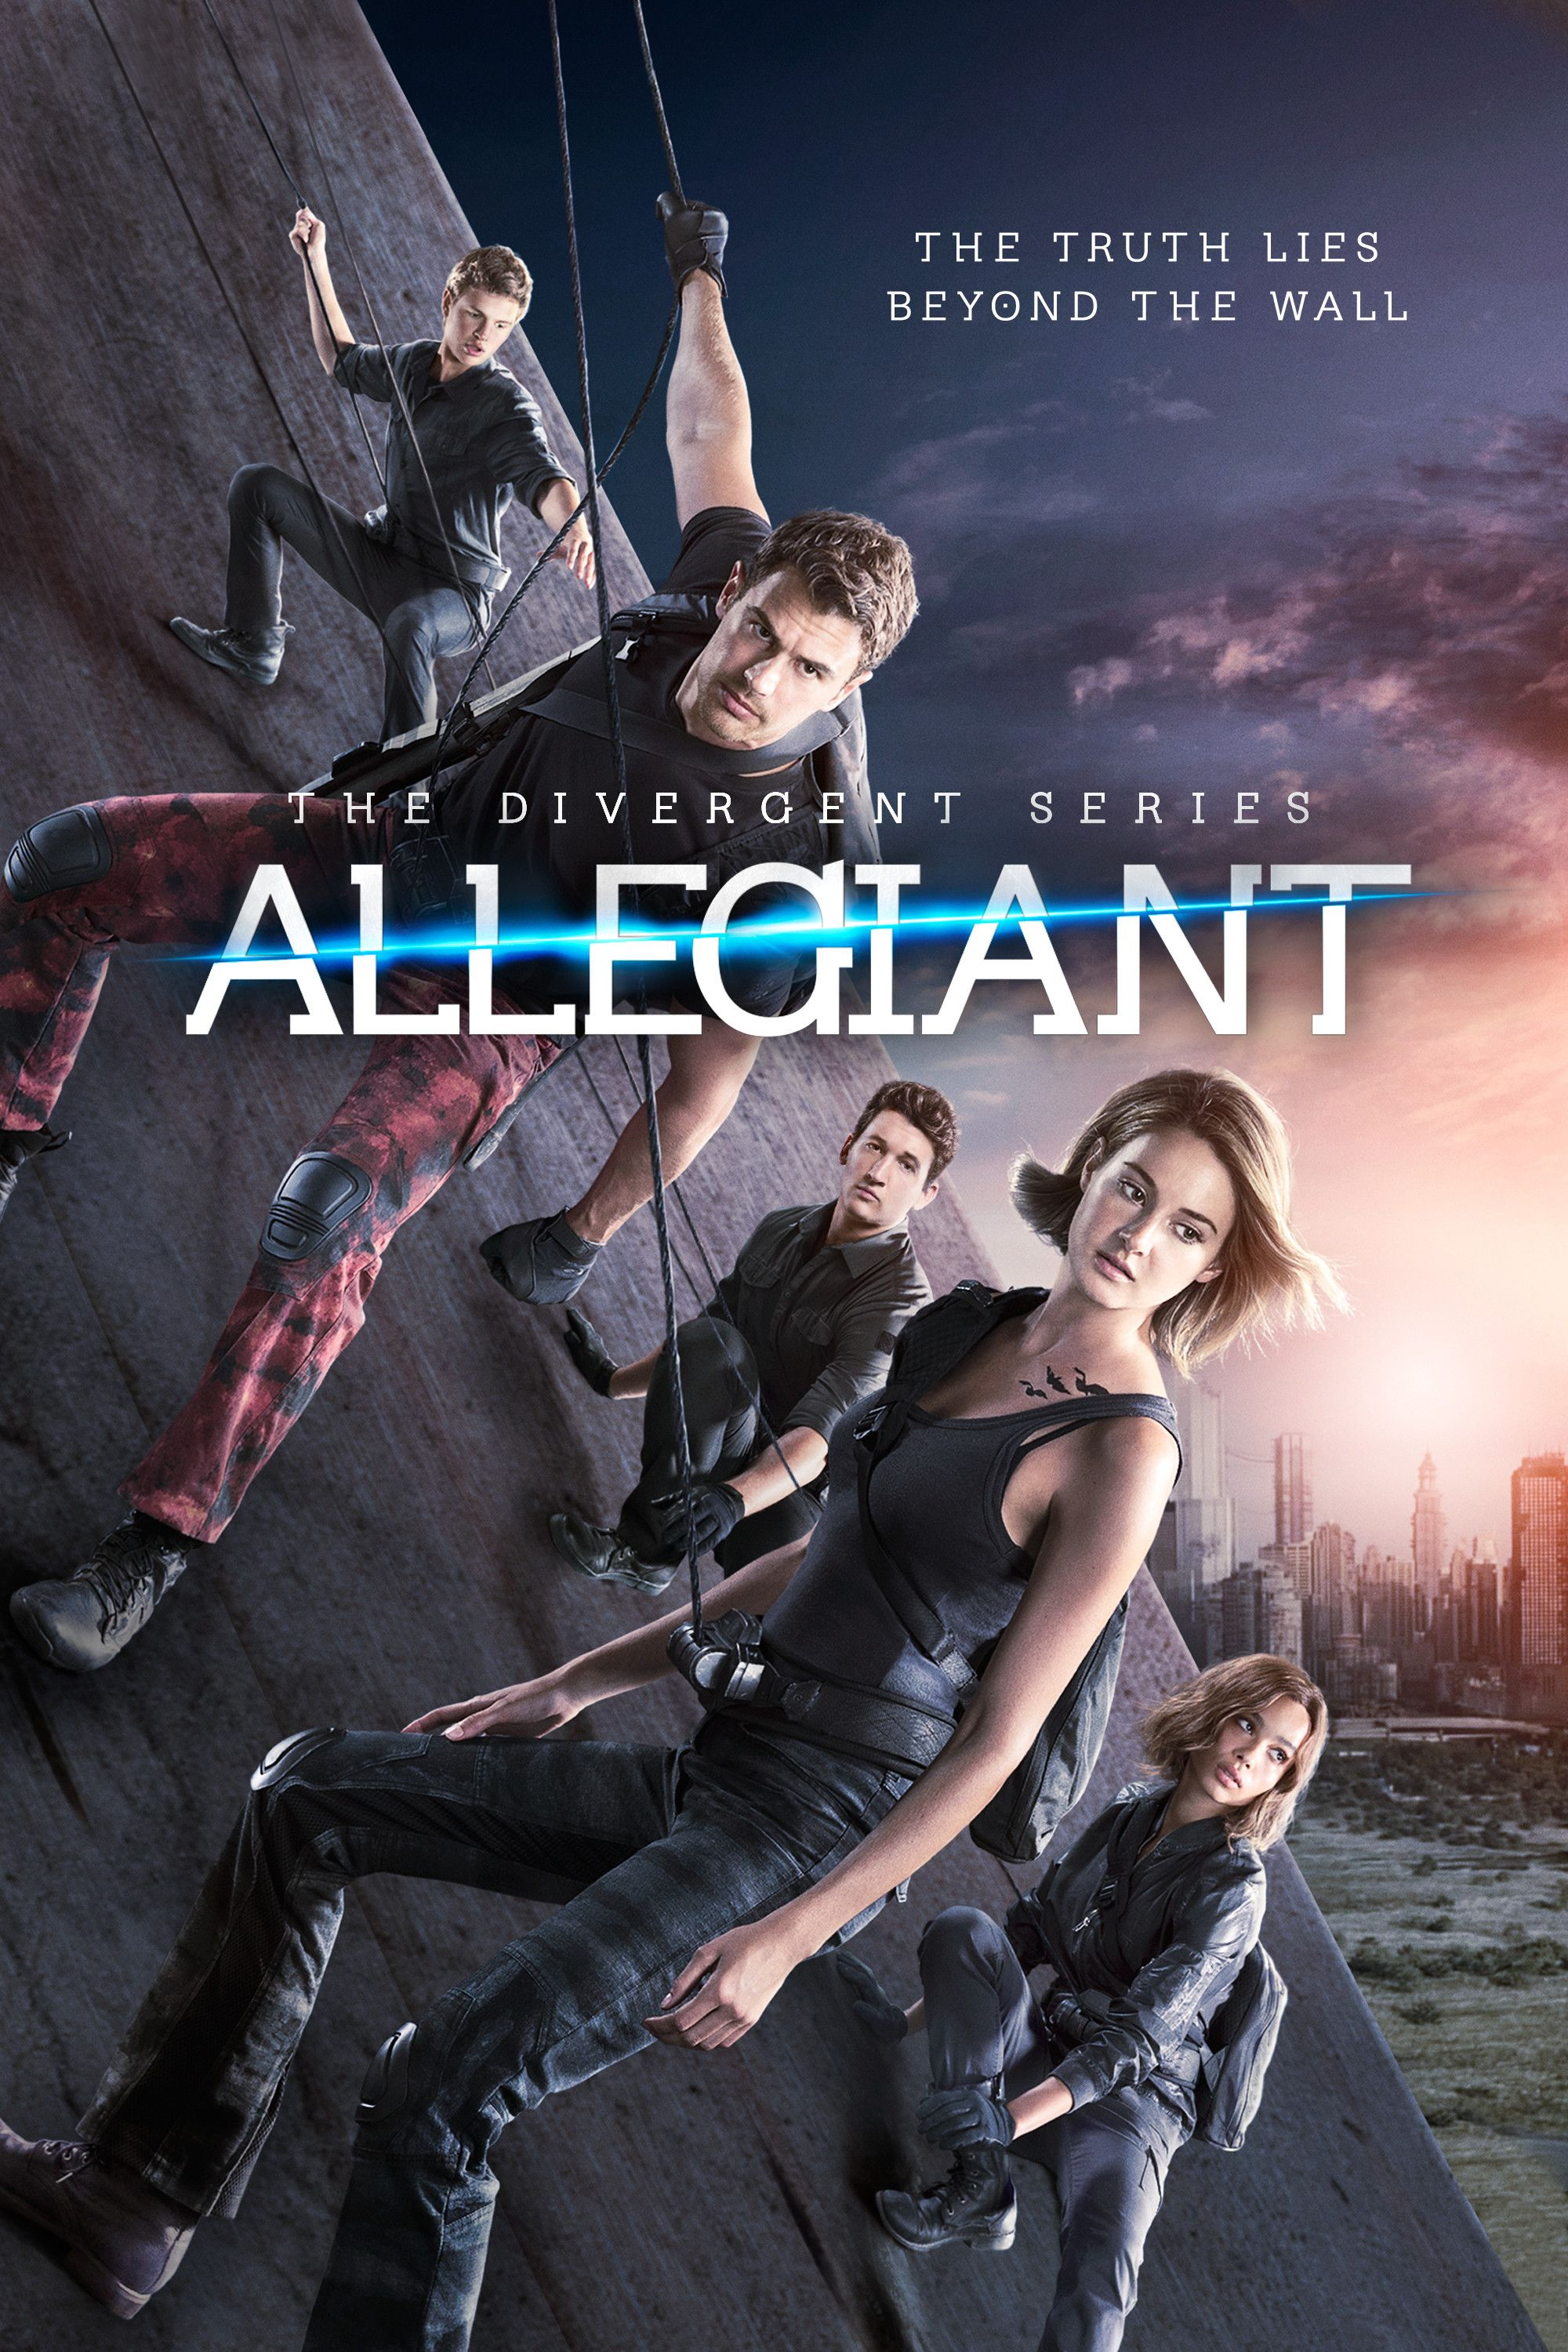 Allegiant (2016) Hindi Dual Audio 480p BluRay x264 ESubs 350MB